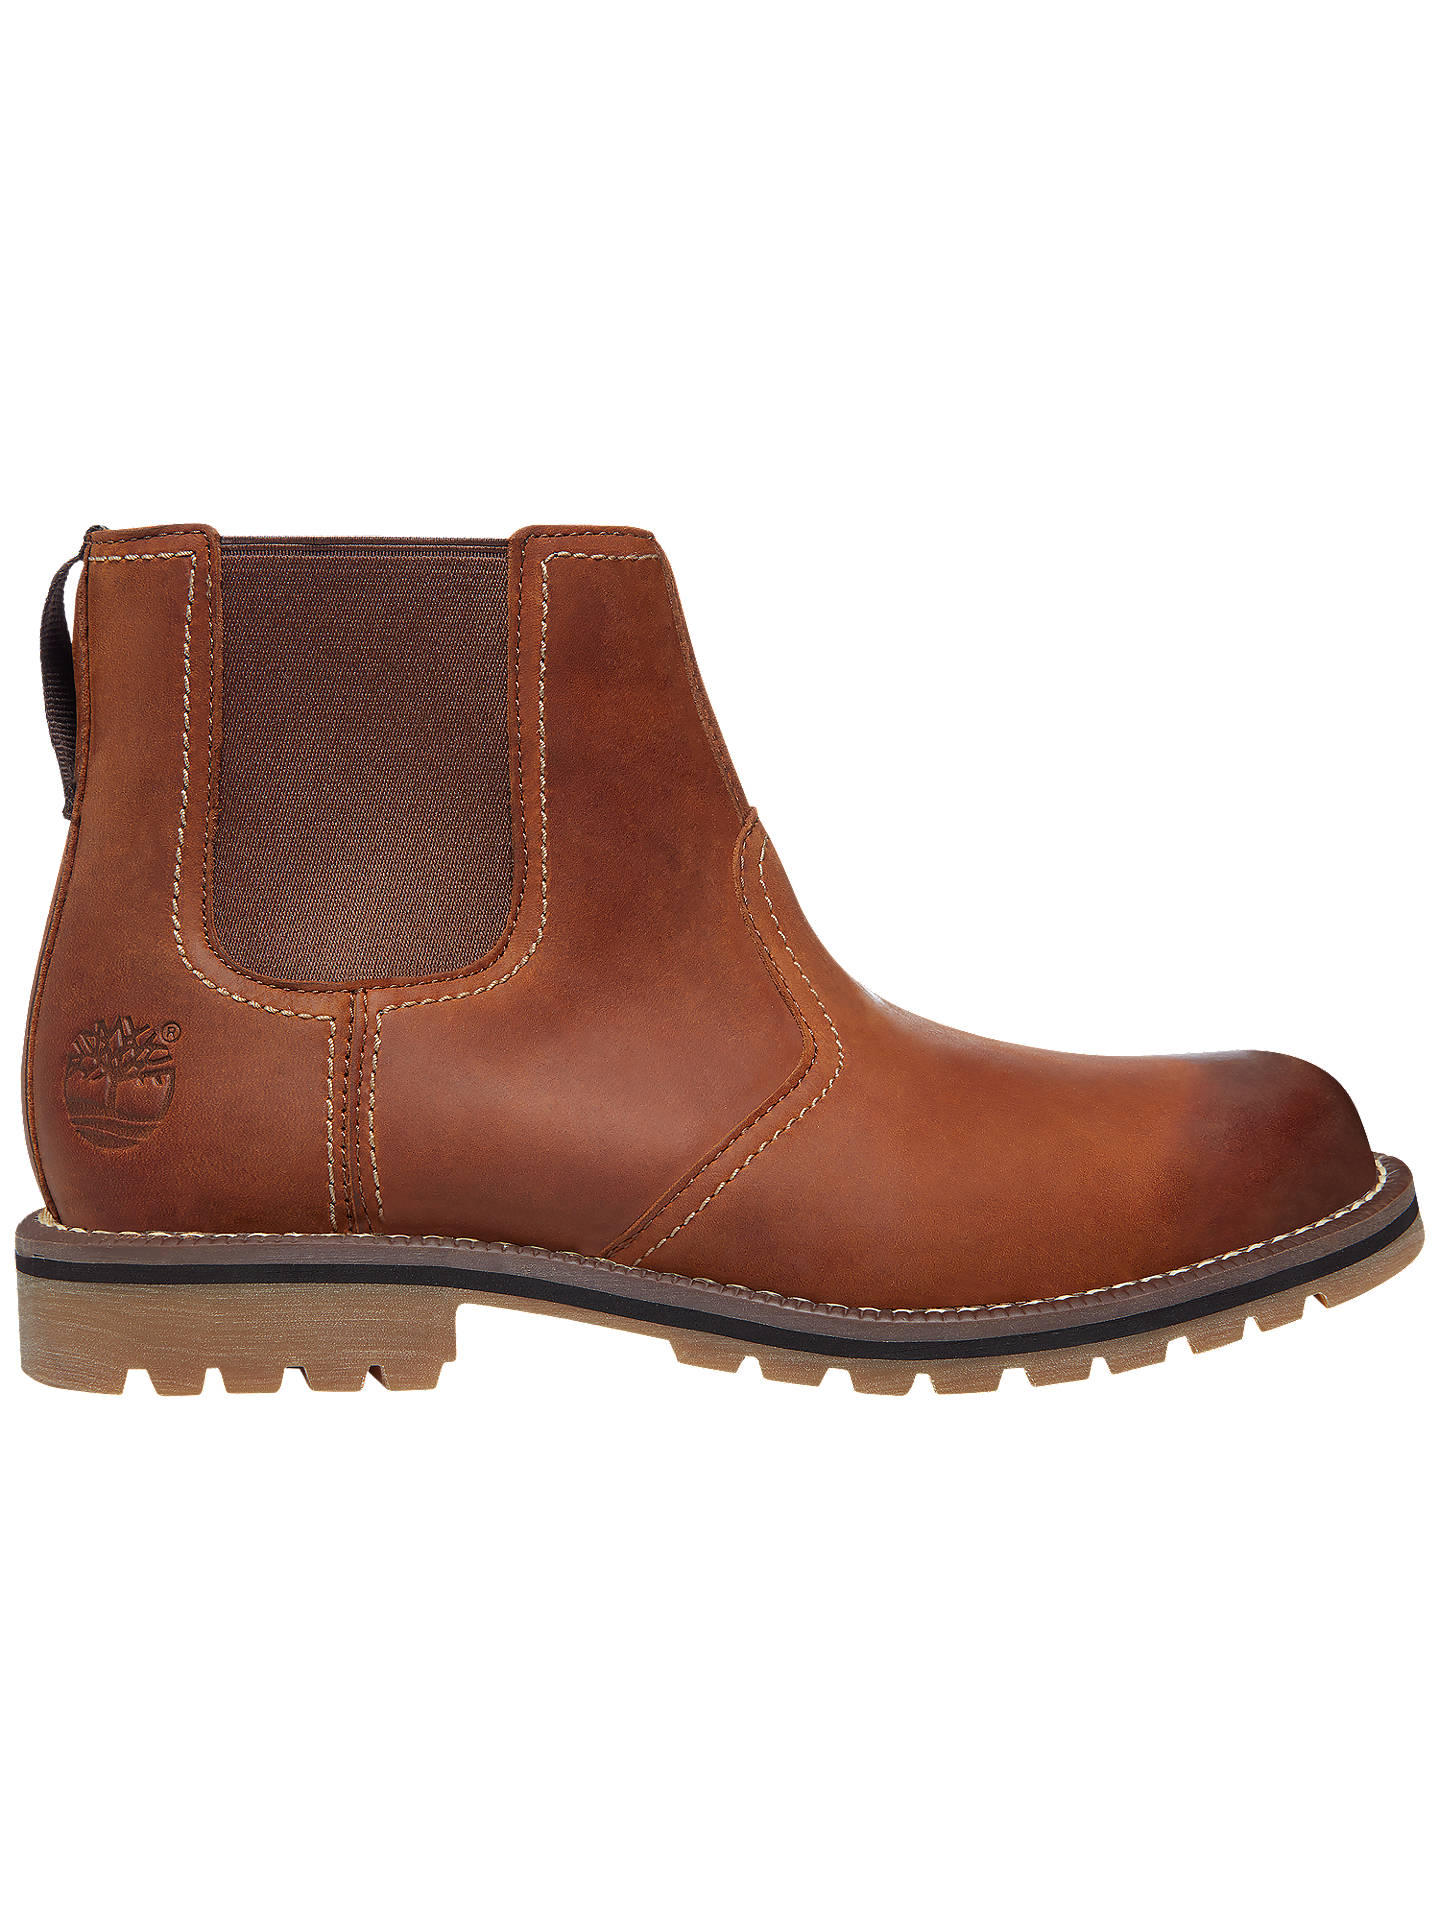 bb423494380c Timberland Larchmont Leather Chelsea Boot at John Lewis   Partners